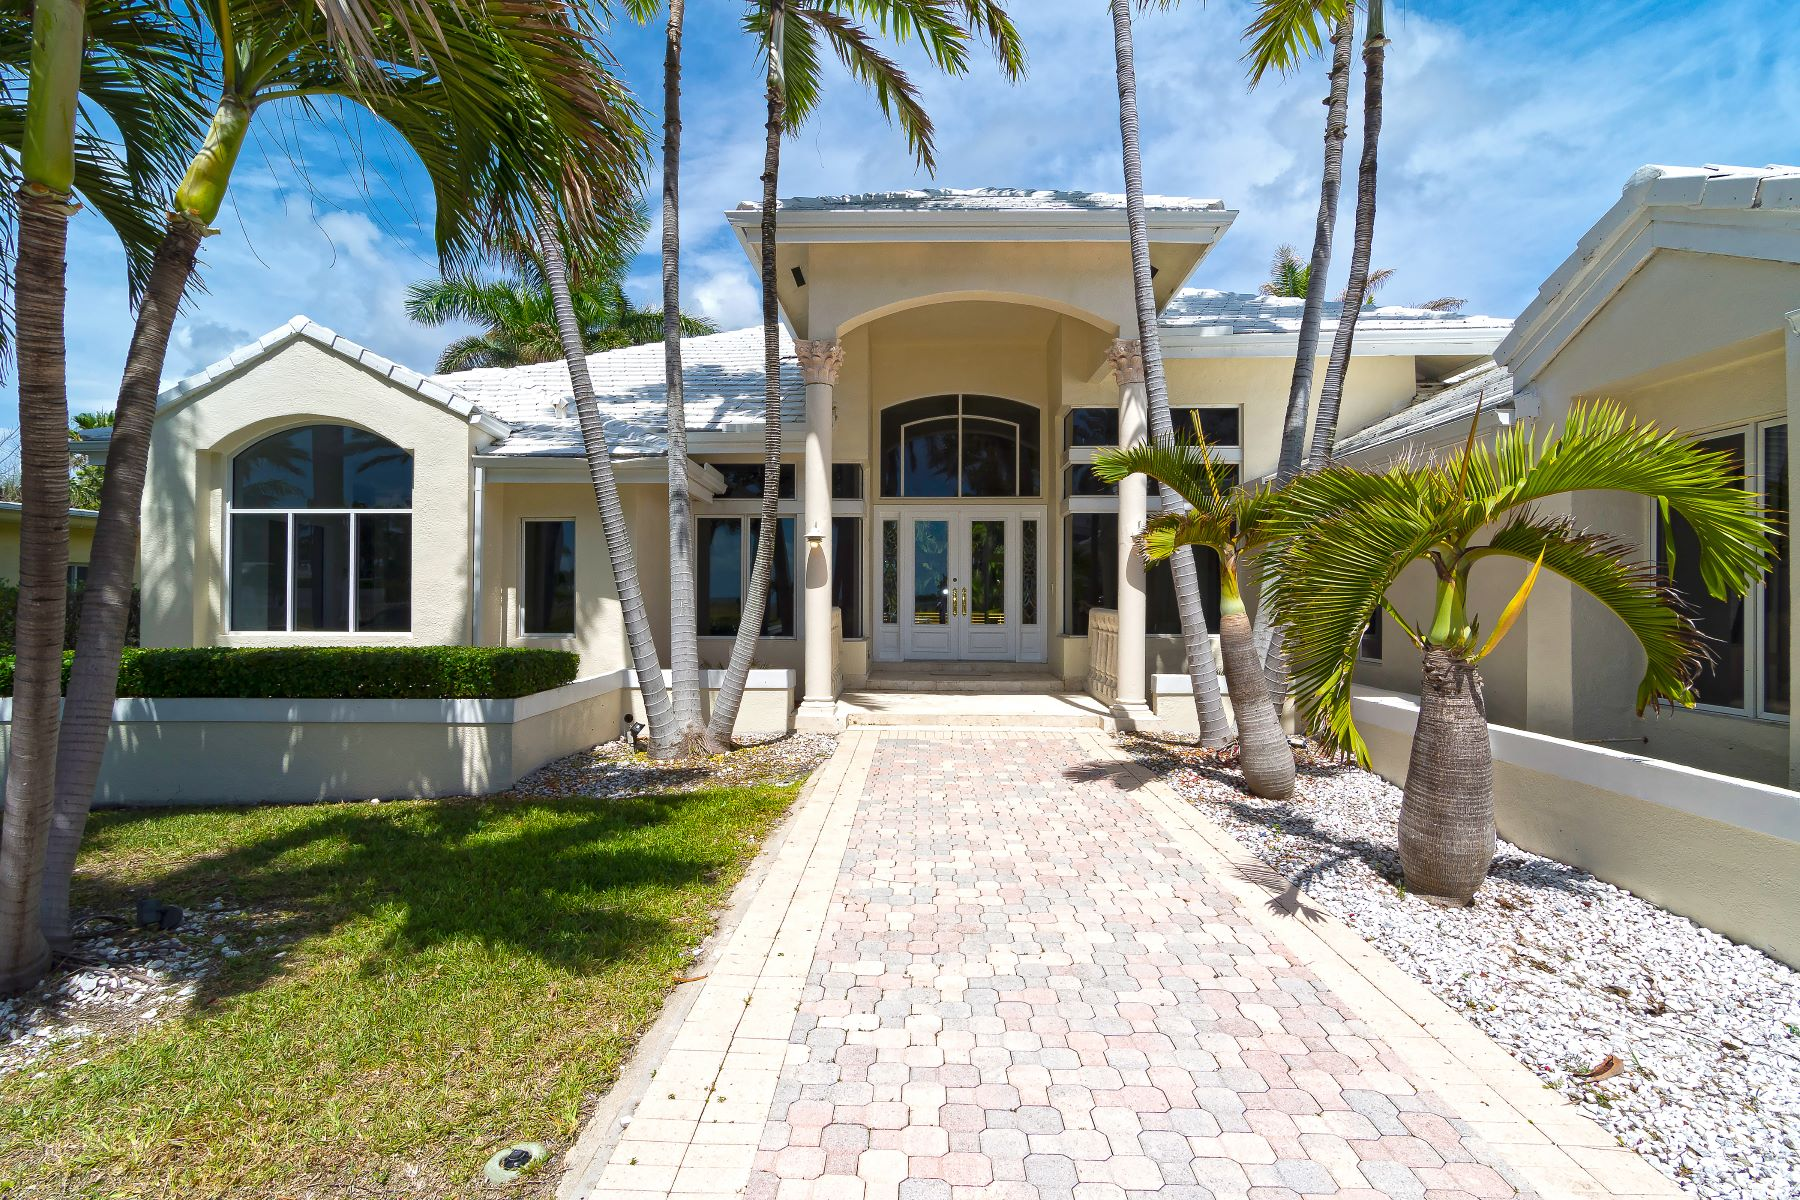 Single Family Home for Sale at 152 Ocean Blvd Golden Beach, Florida, 33160 United States